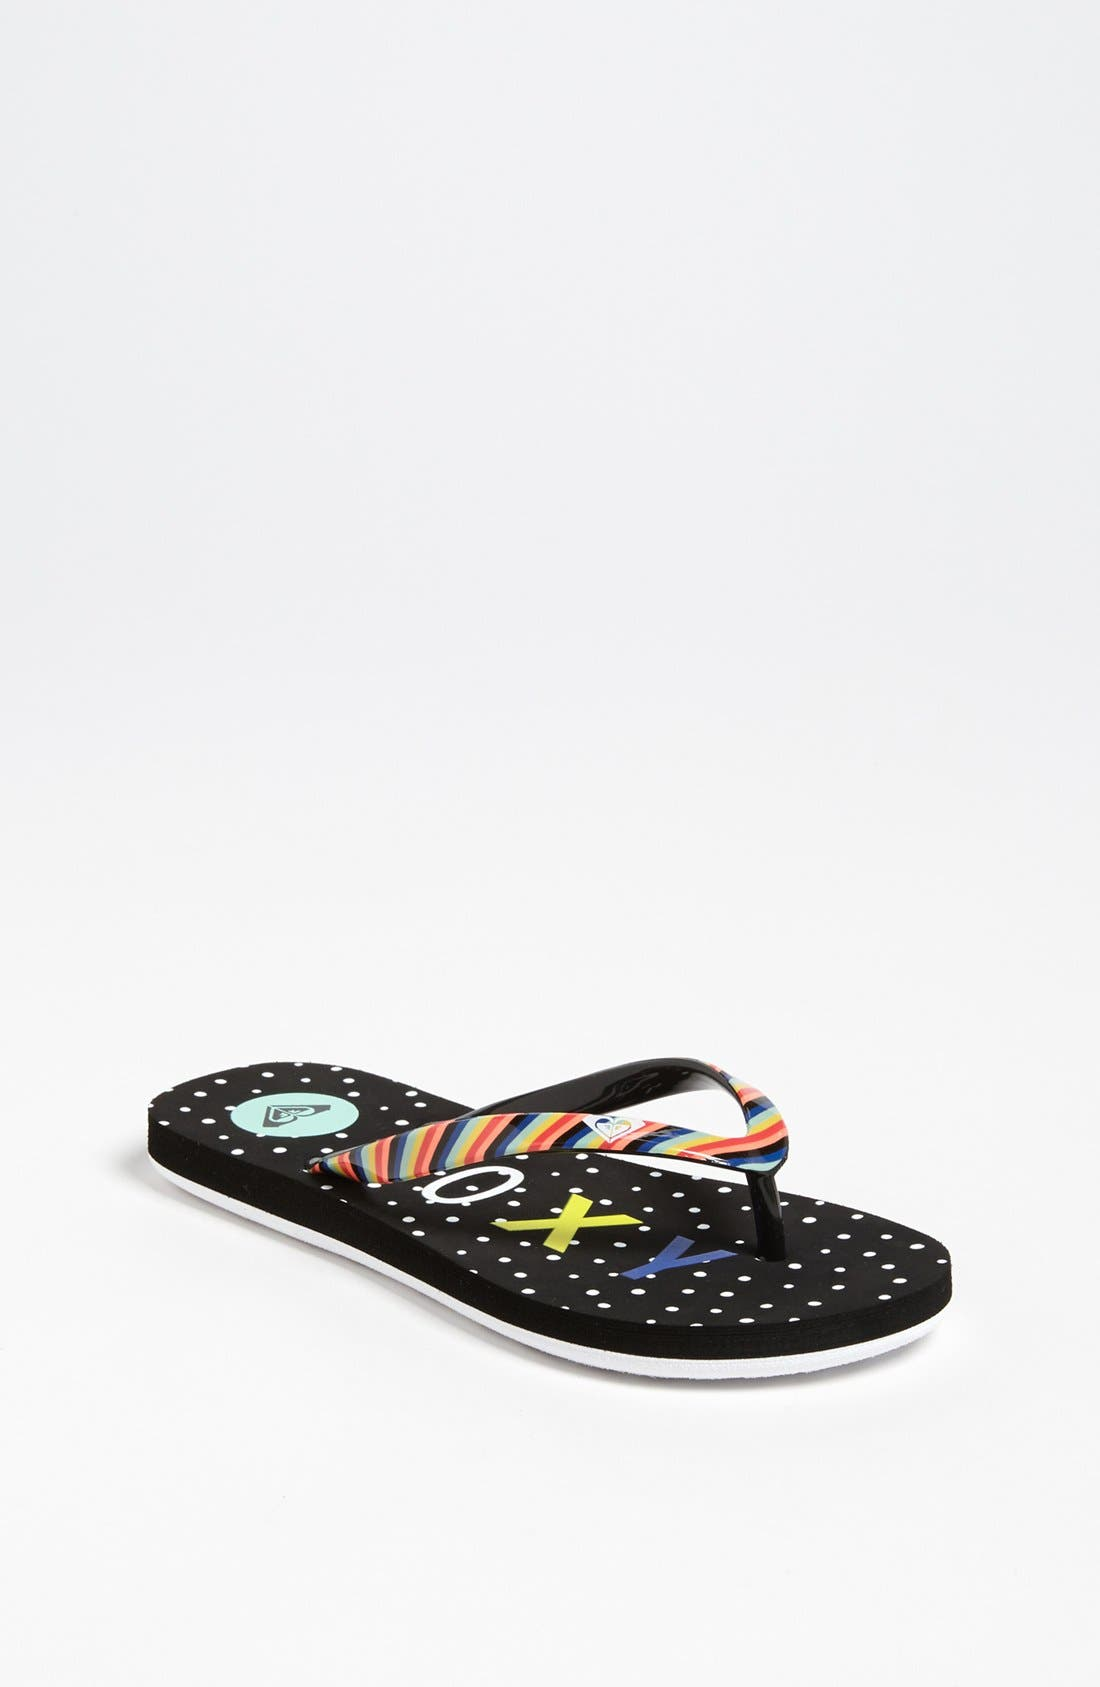 Main Image - 'Pebbles' Sandal (Toddler, Little Kid & Big Kid)